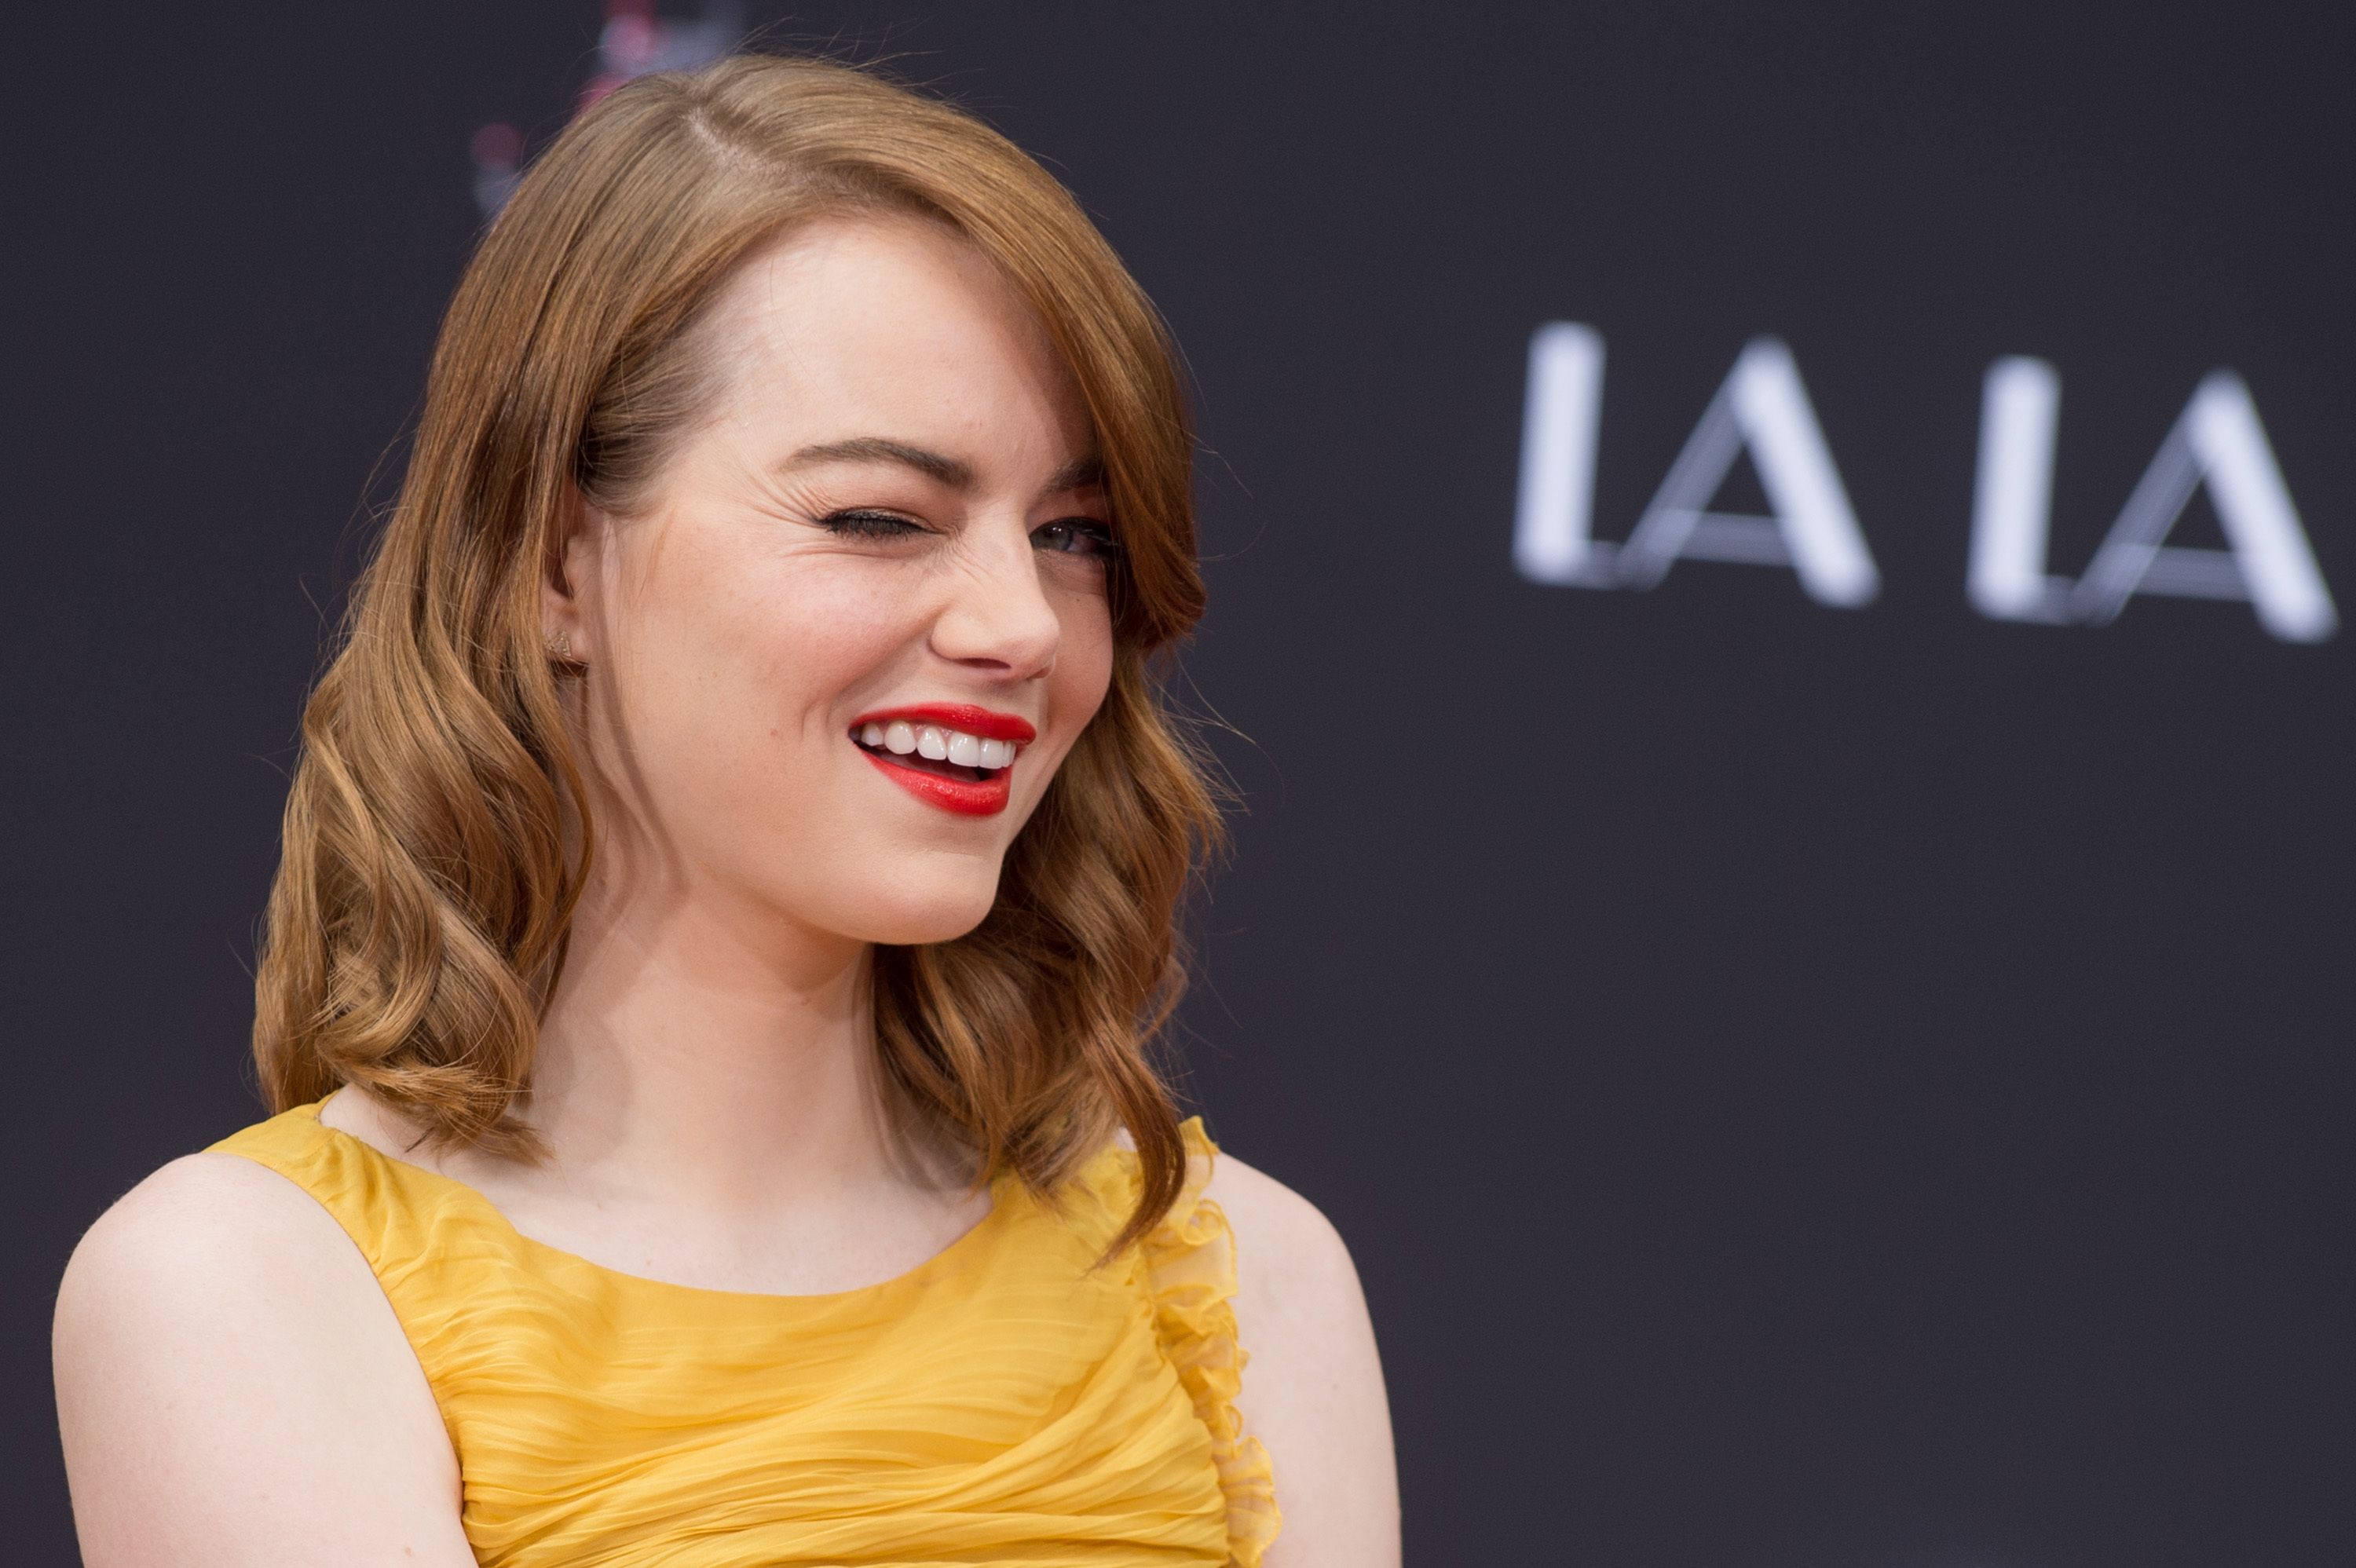 Emma Stone is the #1 highest-paid actress, earning $26 million before taxes in 2017. (Photo: Archive)